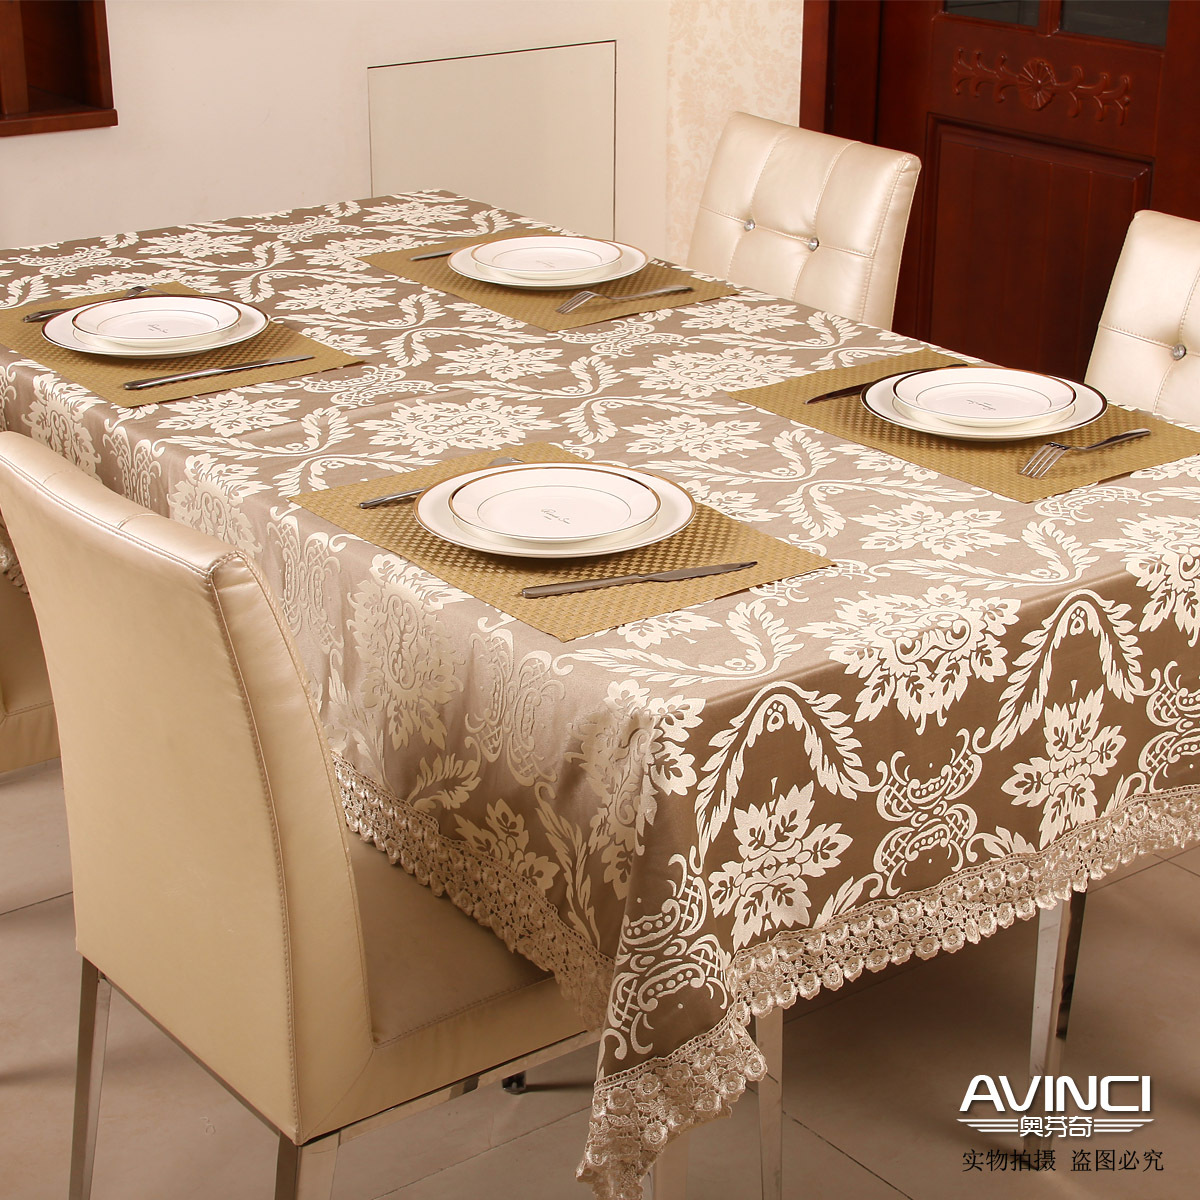 https://ae01.alicdn.com/kf/HTB15URjIXXXXXb1XpXXq6xXFXXXs/Free-Shipping-Fashion-elegant-fabric-of-luxury-dining-table-cloth-chair-covers-cushion-tablecloth-coffee-table.jpg